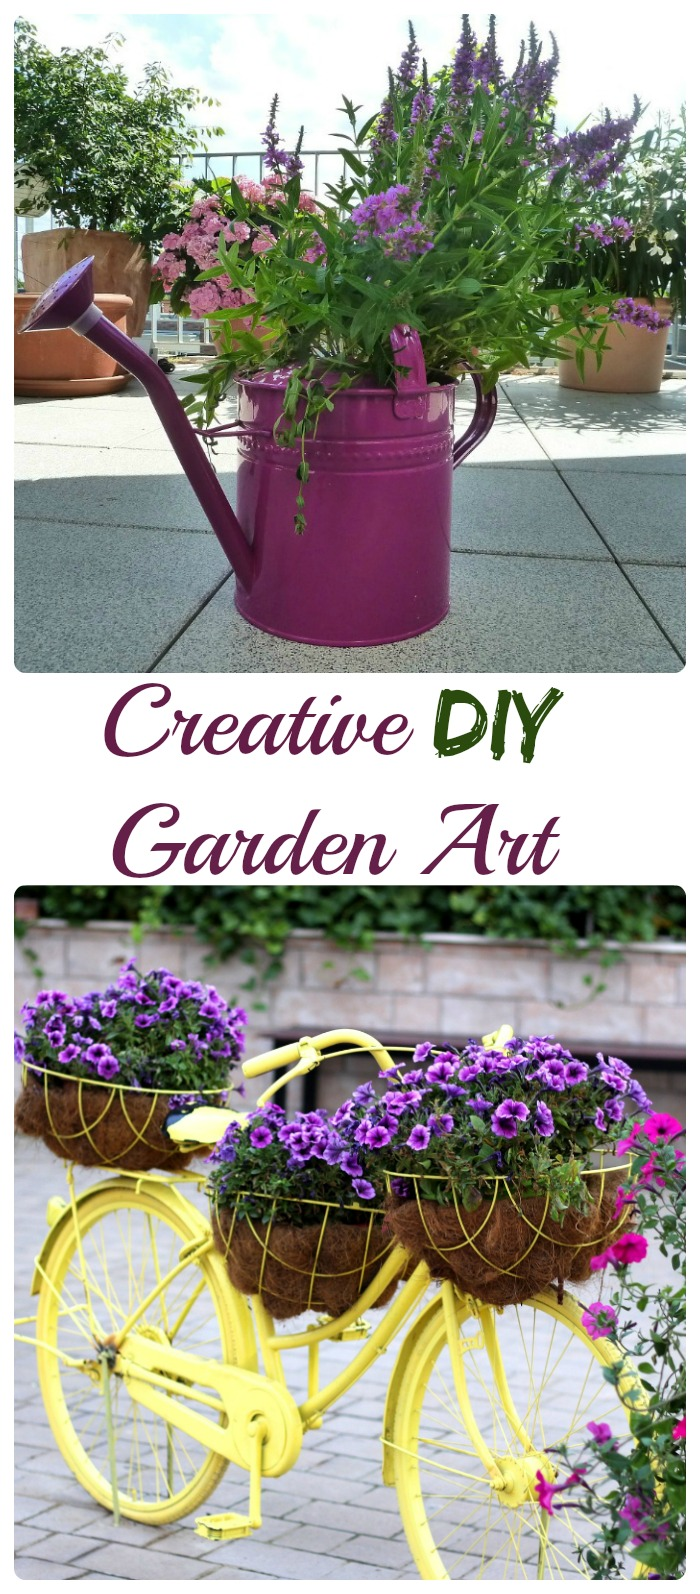 Garden Art - Creative ideas by Recycling - The Gardening Cook